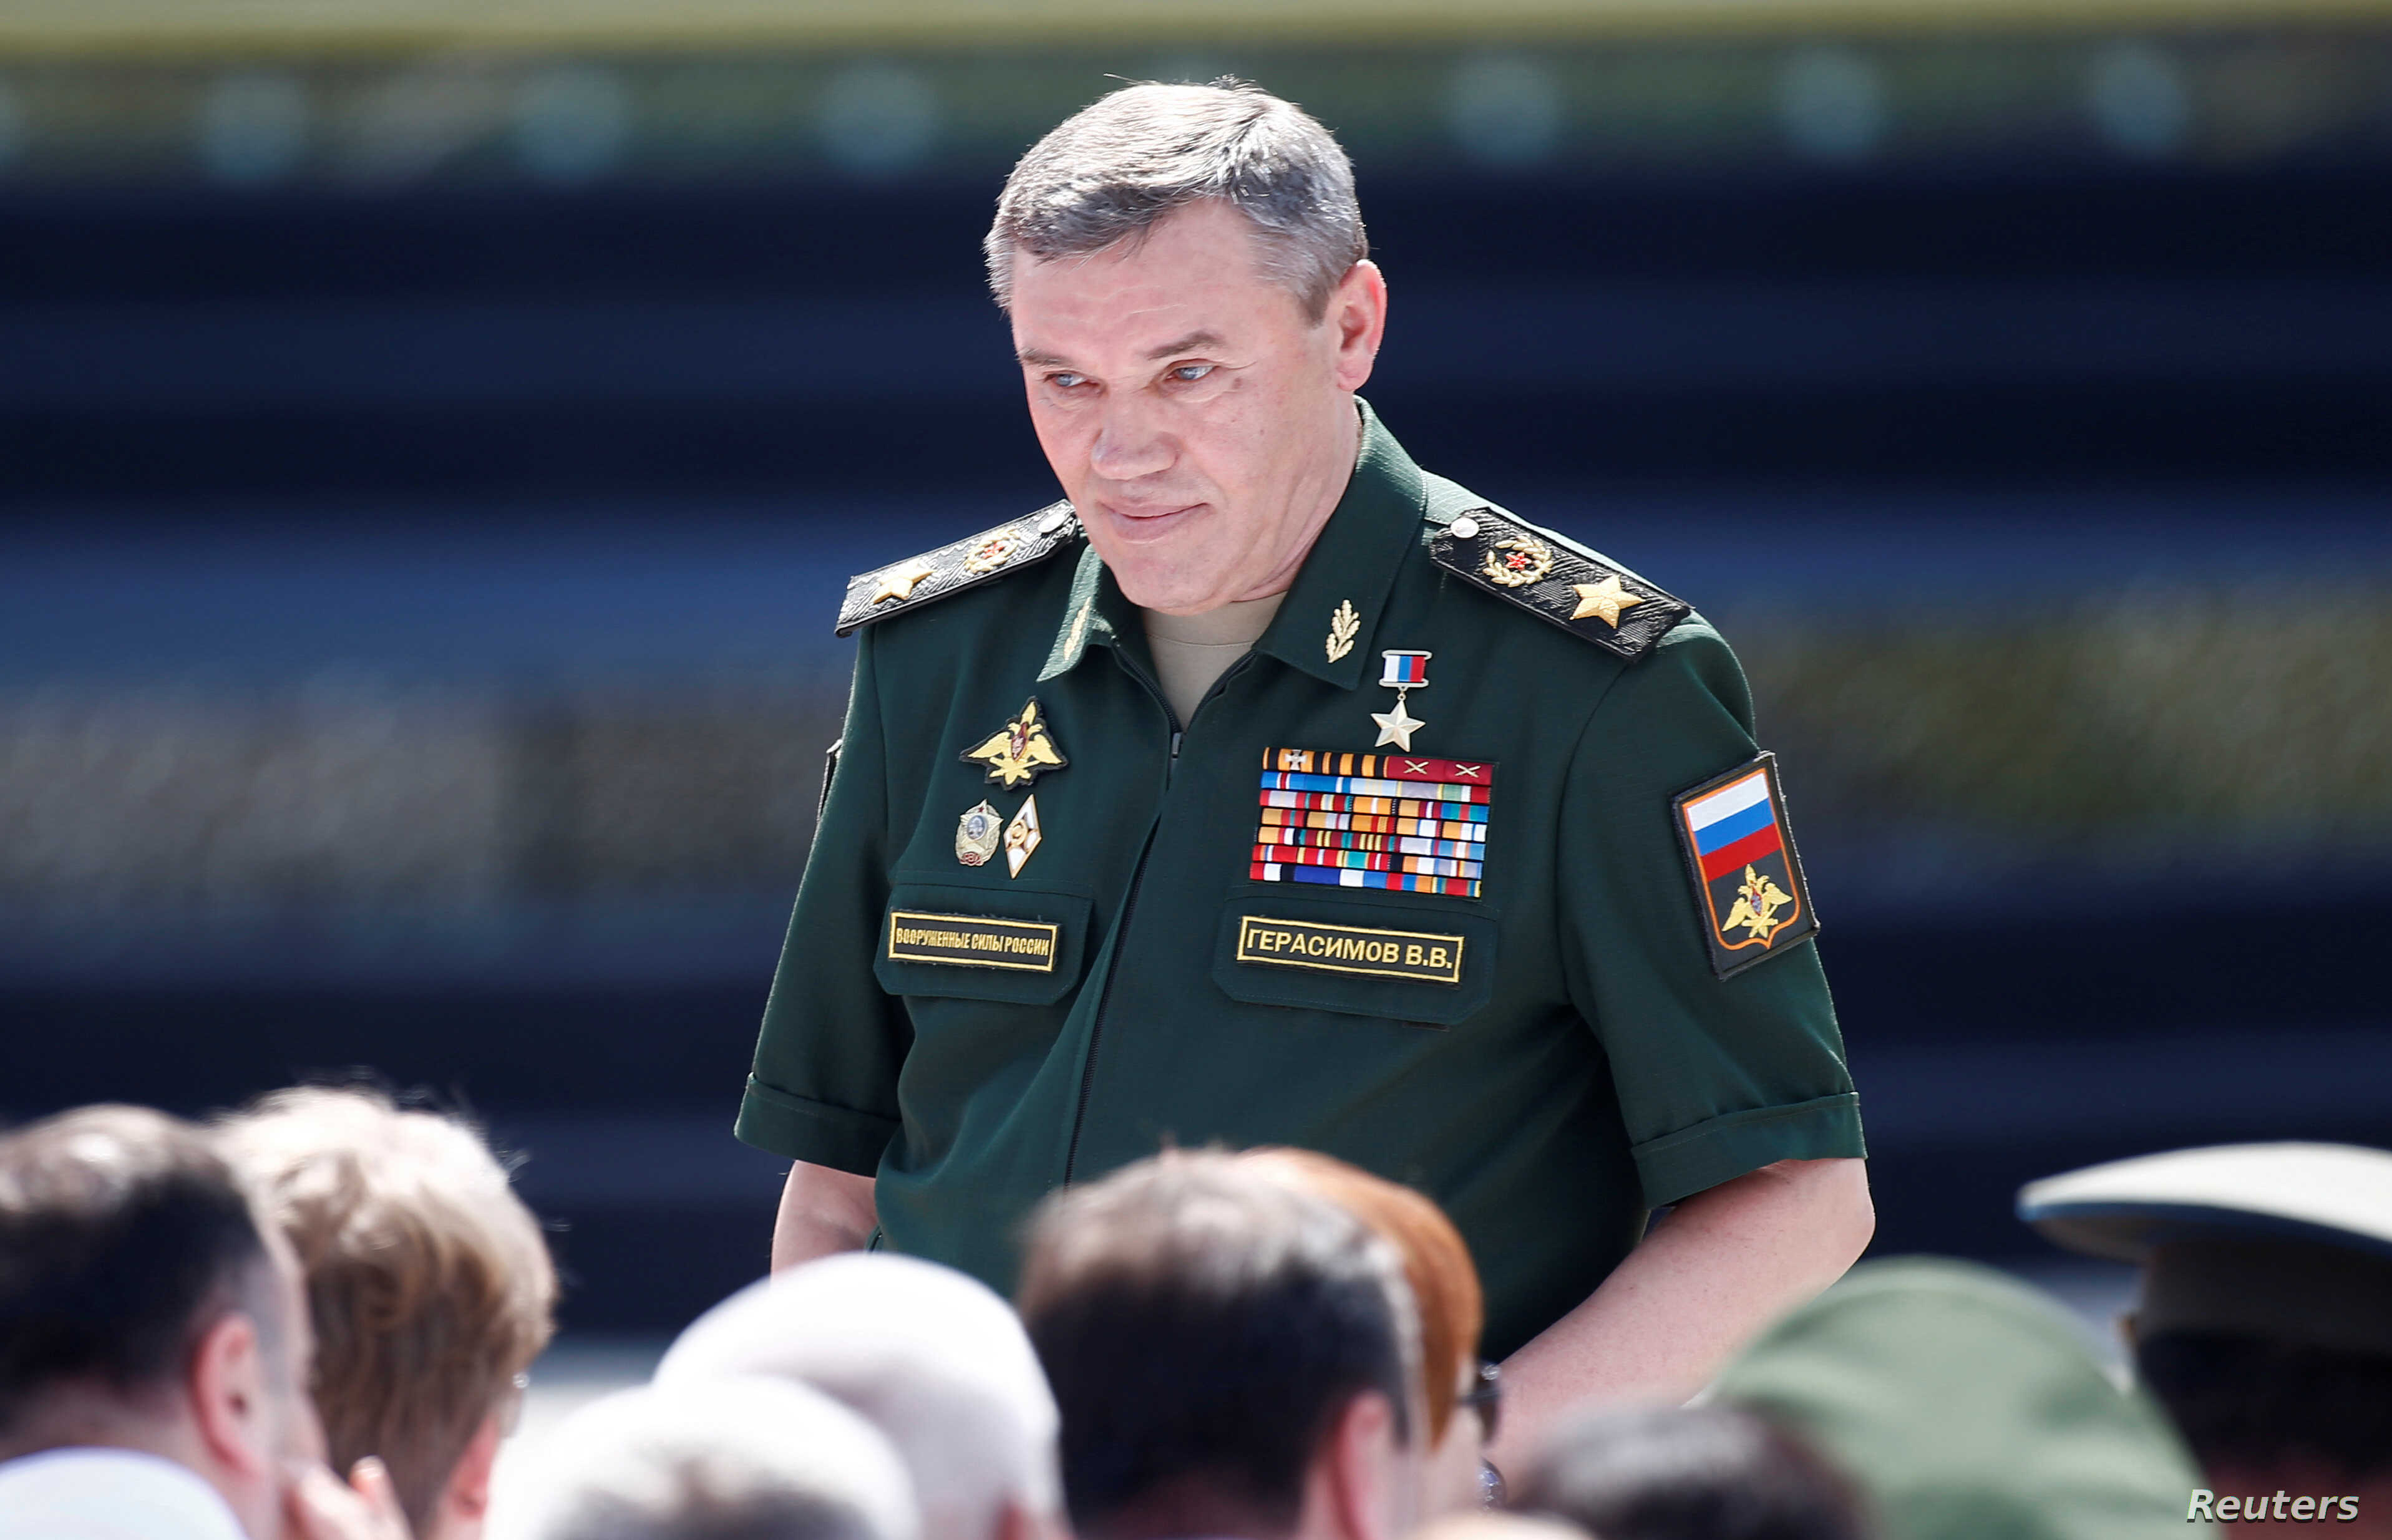 Chief of the General Staff of Russian Armed Forces, Valery Gerasimov, arrives for the opening ceremony of the International Army Games 2017 in Alabino, outside Moscow, Russia, July 29, 2017.